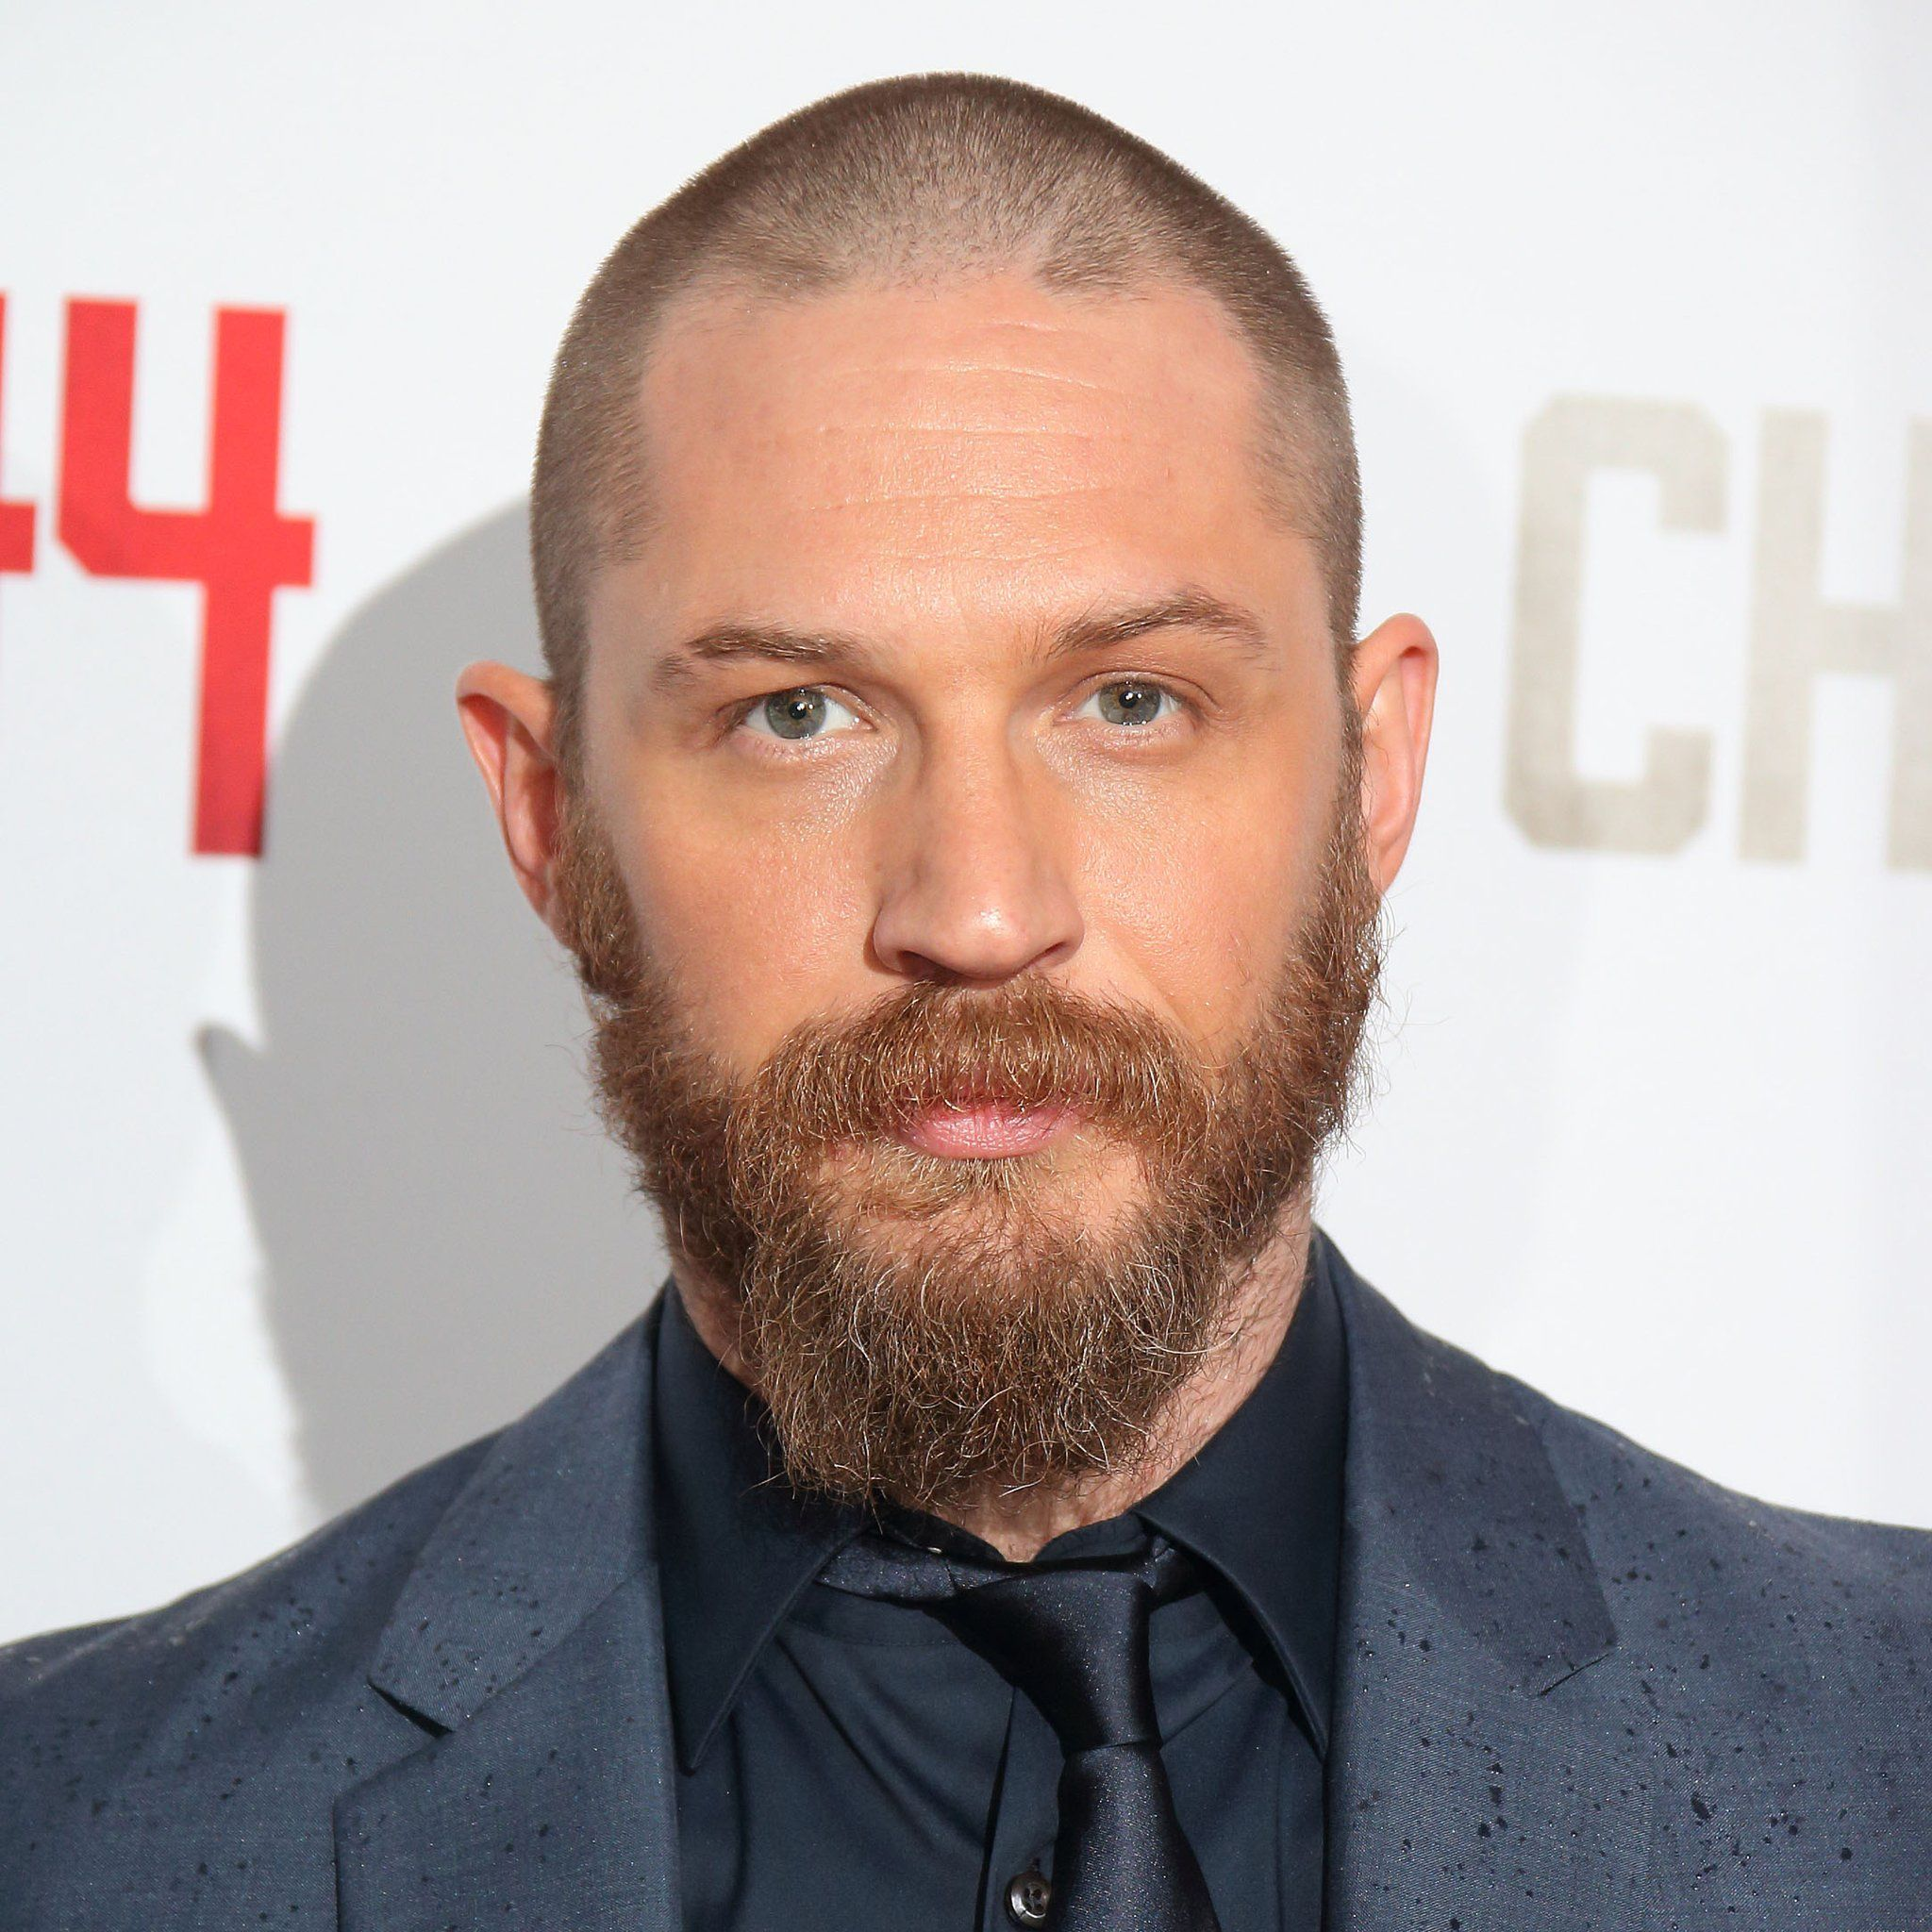 Image Result For Shave Head Beard Beard Styles For Men Thin Hair Men Hairstyles For Thin Hair